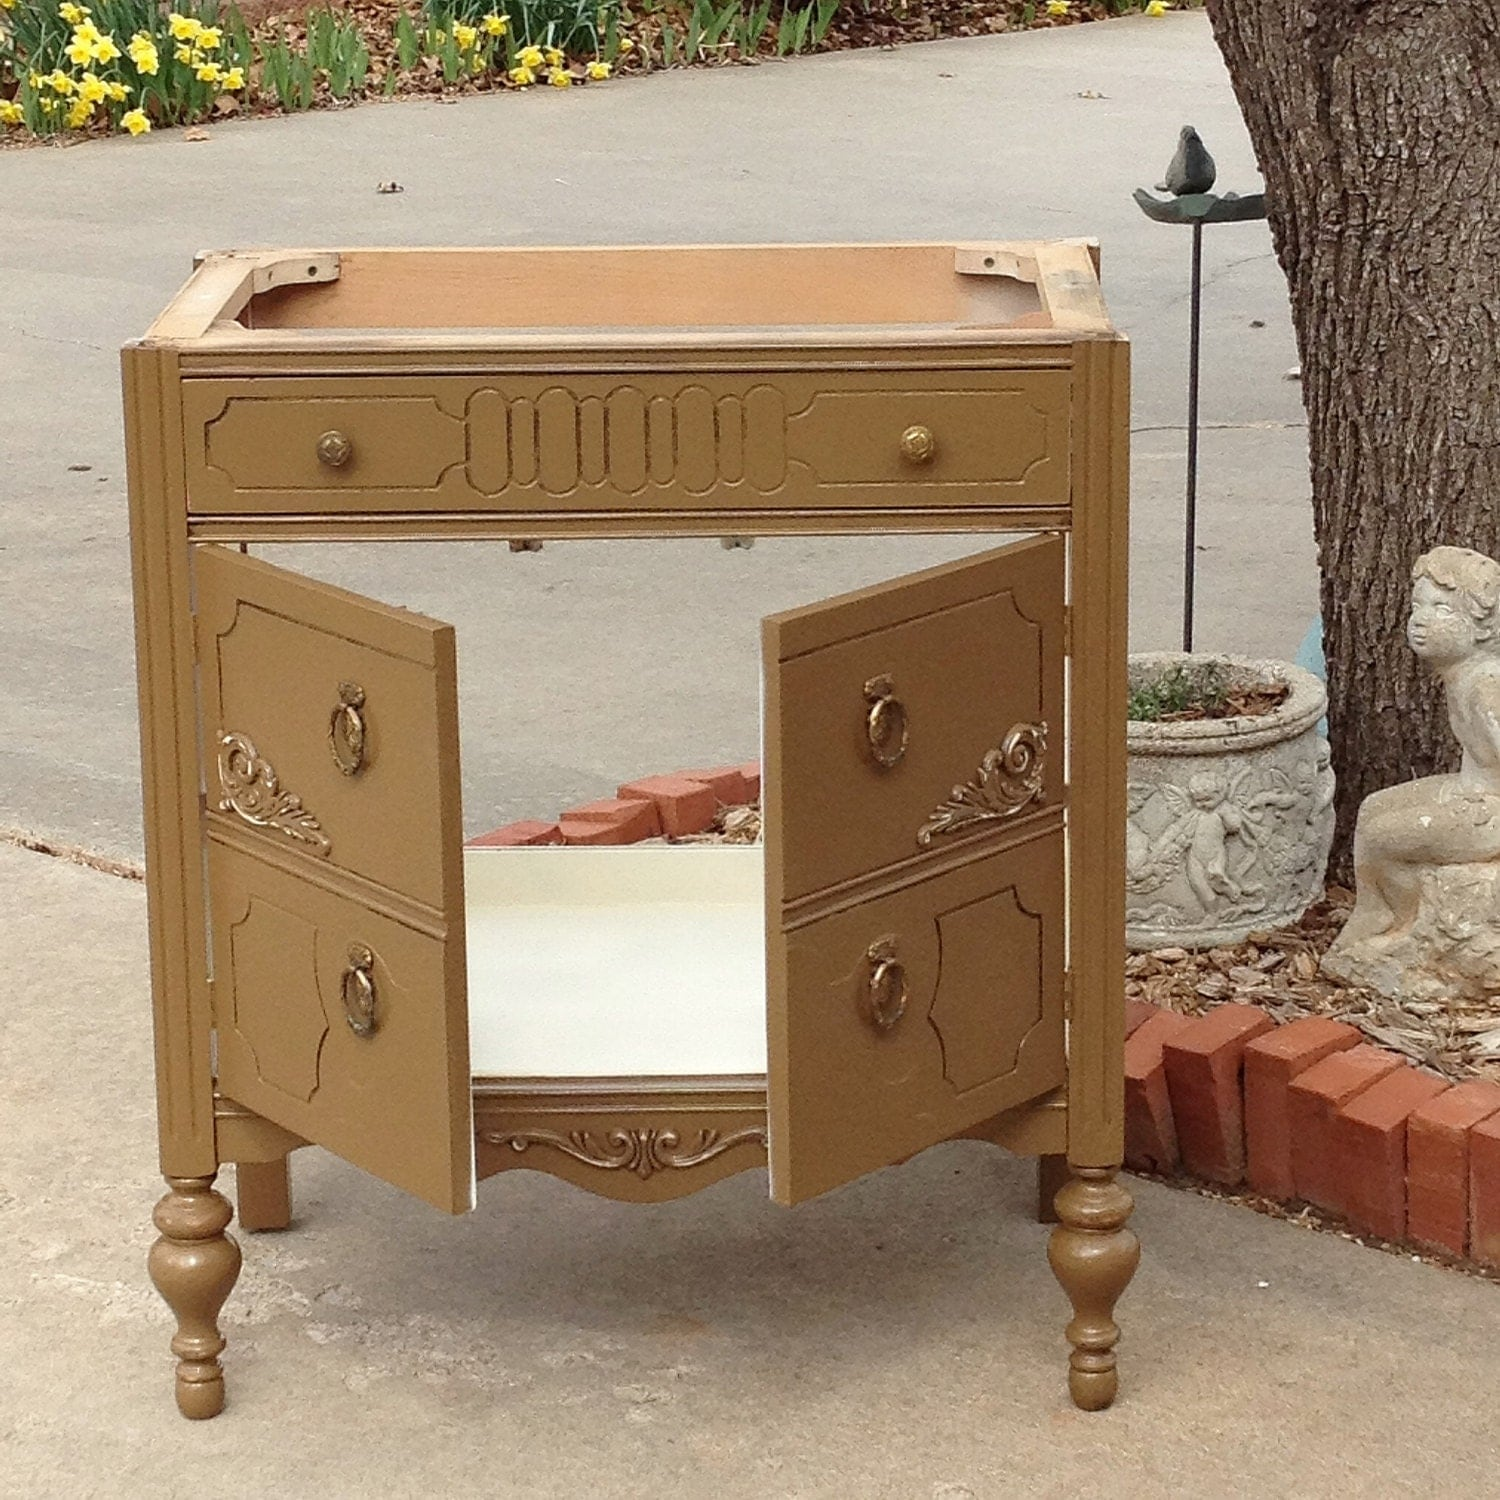 Bath vanity cabinet from antique dresser custom to order converted for bathroom 28 to 48 wide for Antique dresser bathroom vanity